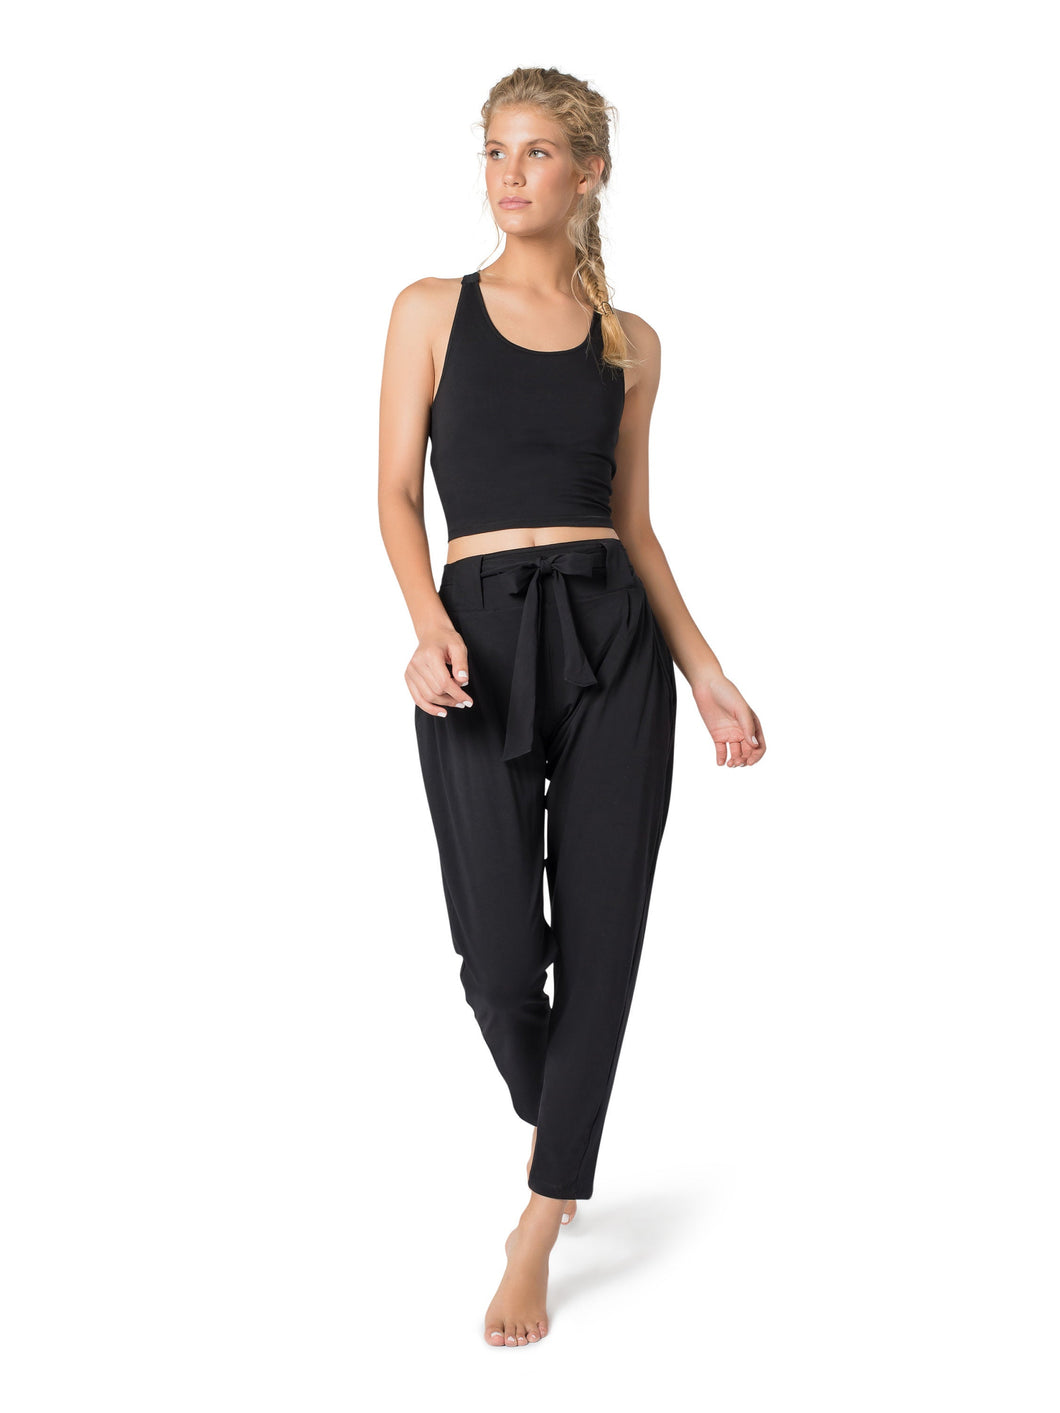 Black Pants for Women, Maxi Pants, Casual Pants, Yoga Pants, Cotton Trousers, Loose Pants, Boho Pants, Streetwear, Dance Pants, Comfy Pants.